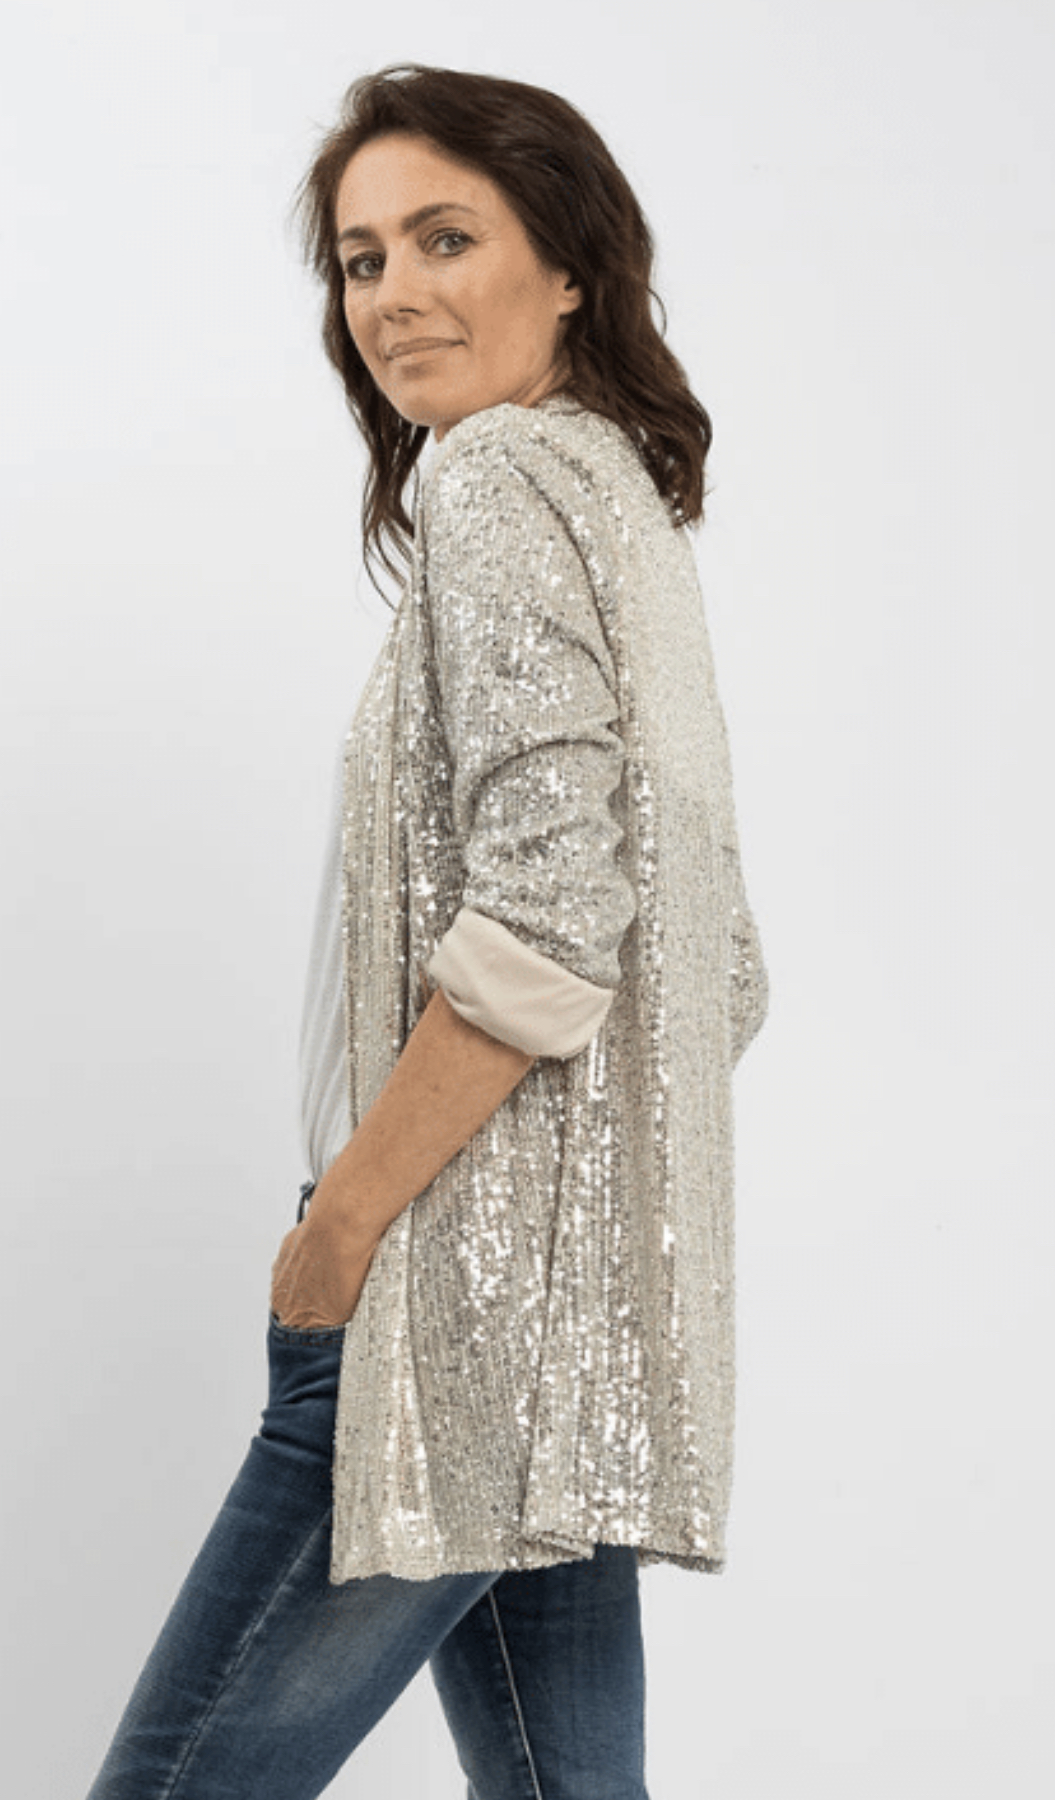 Sequins Silver